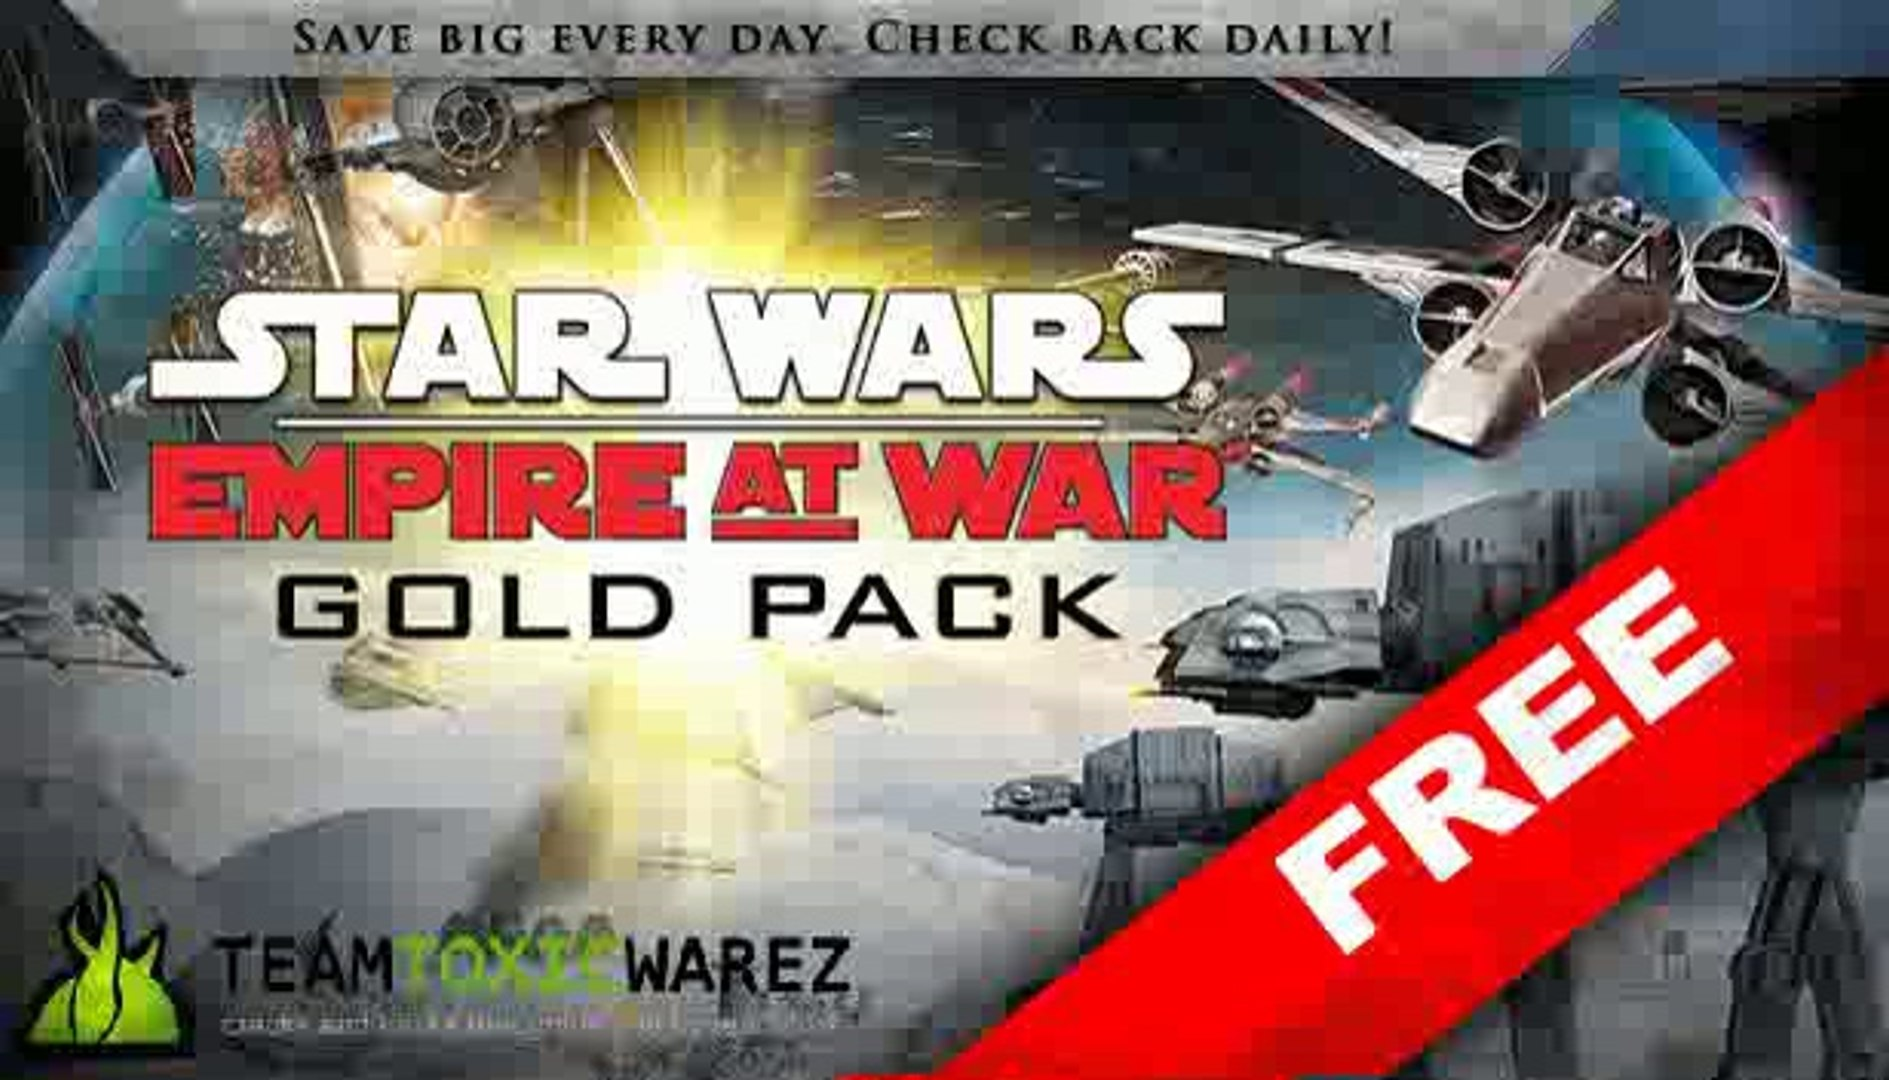 Star Wars Empire at War Gold Pack Steam Key Free